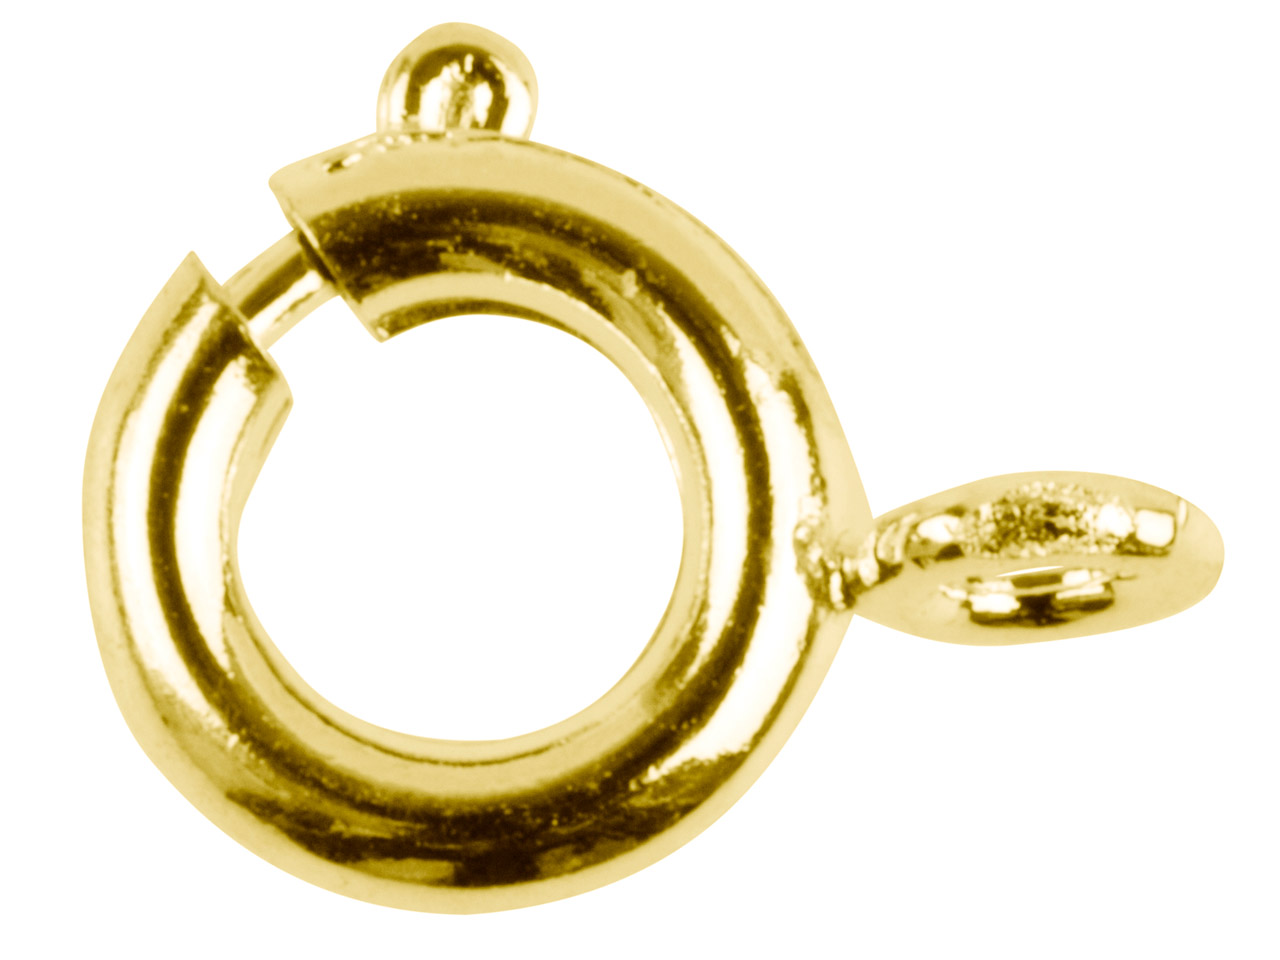 Gold Plated Bolt Rings 7mm         Pack of 10